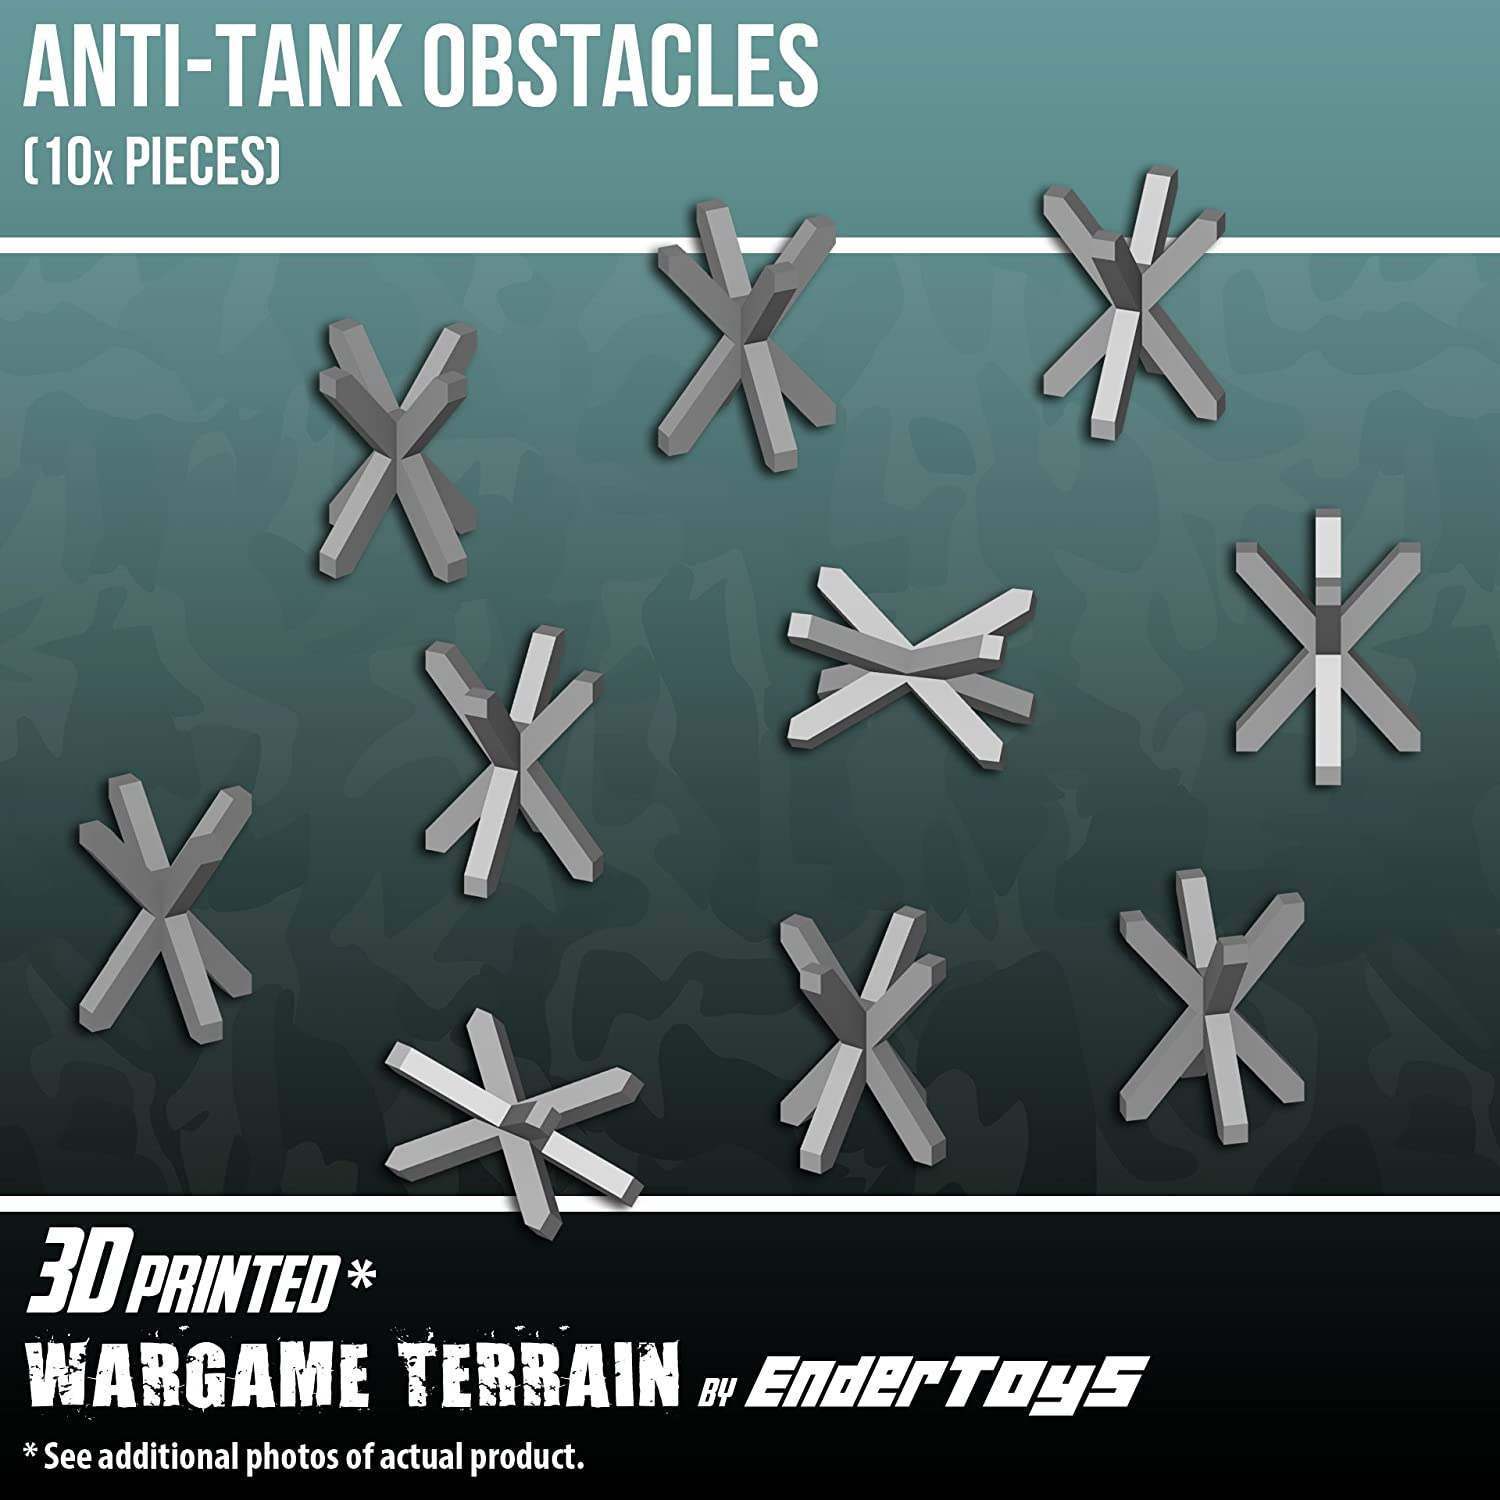 Anti-tank Obstacle, Terrain Scenery for Tabletop 28mm Miniatures ...